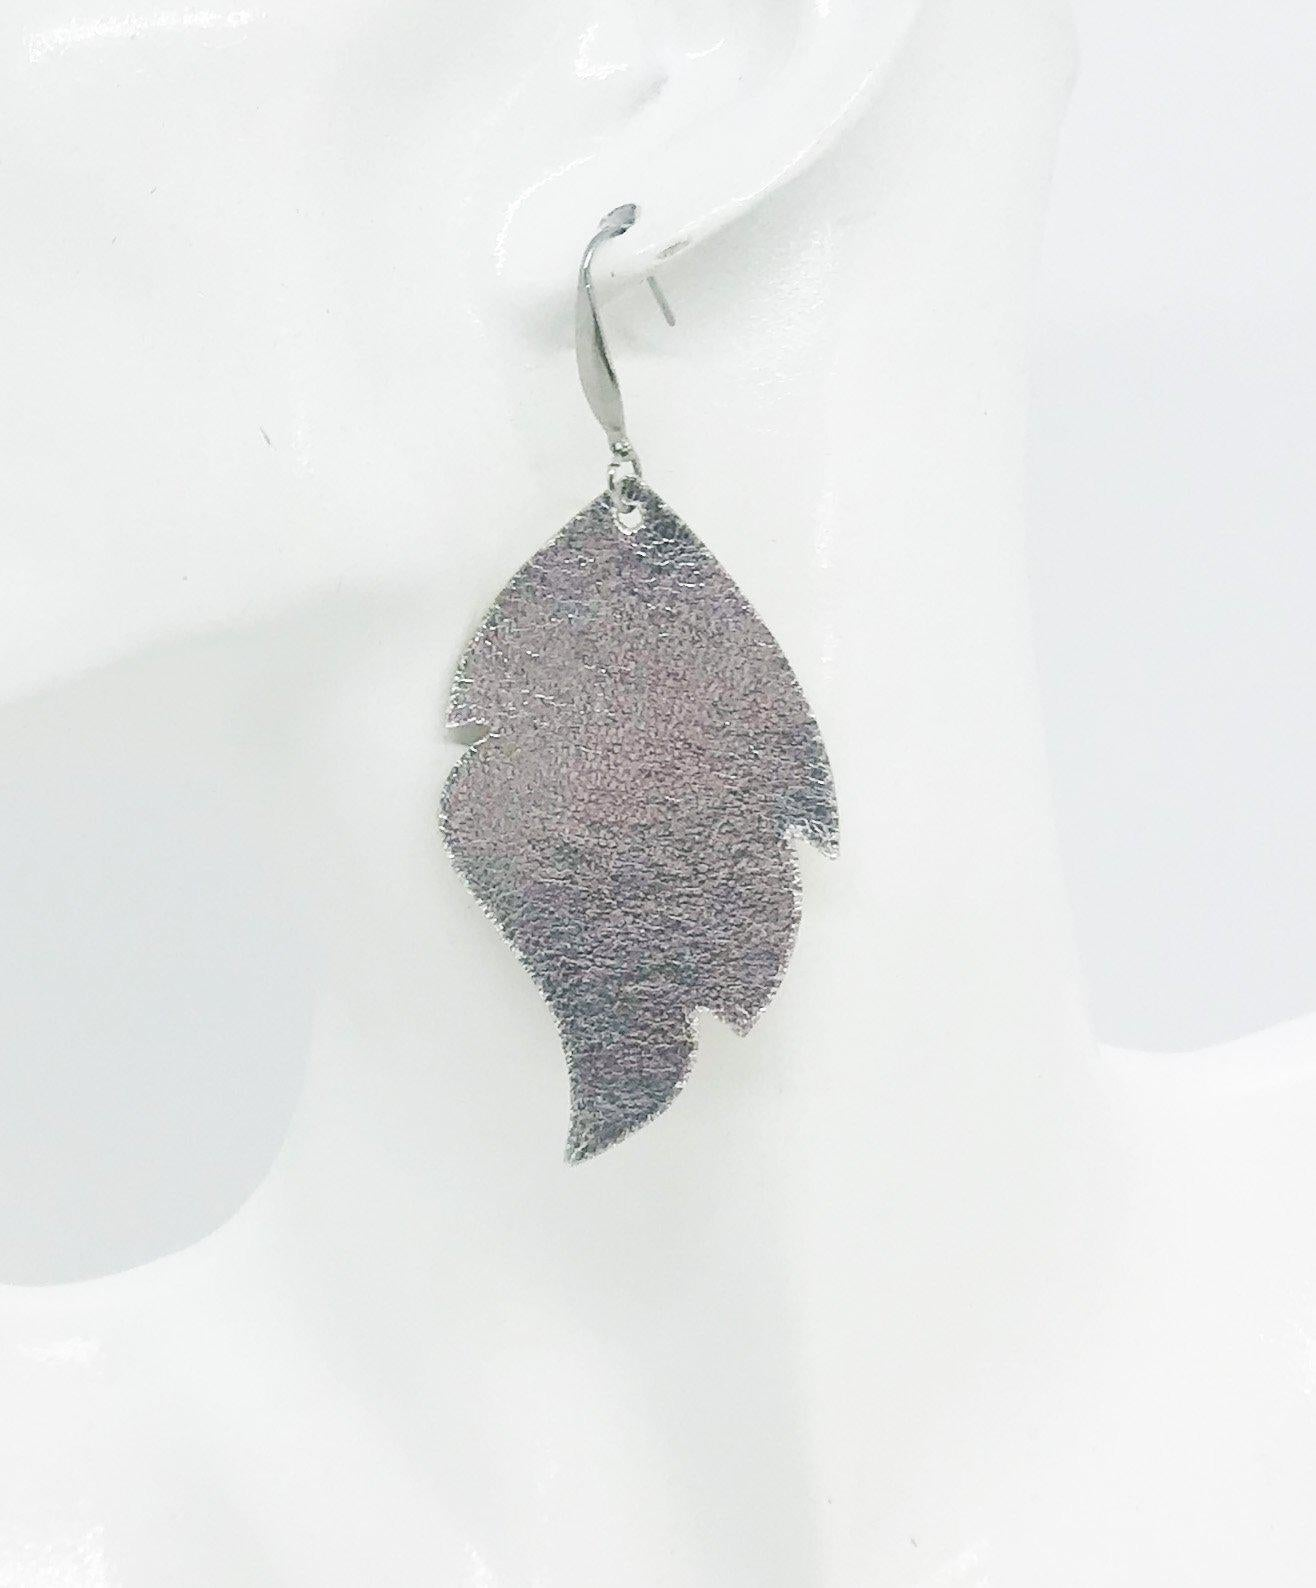 Metallic Silver Leather Earrings - E19-967